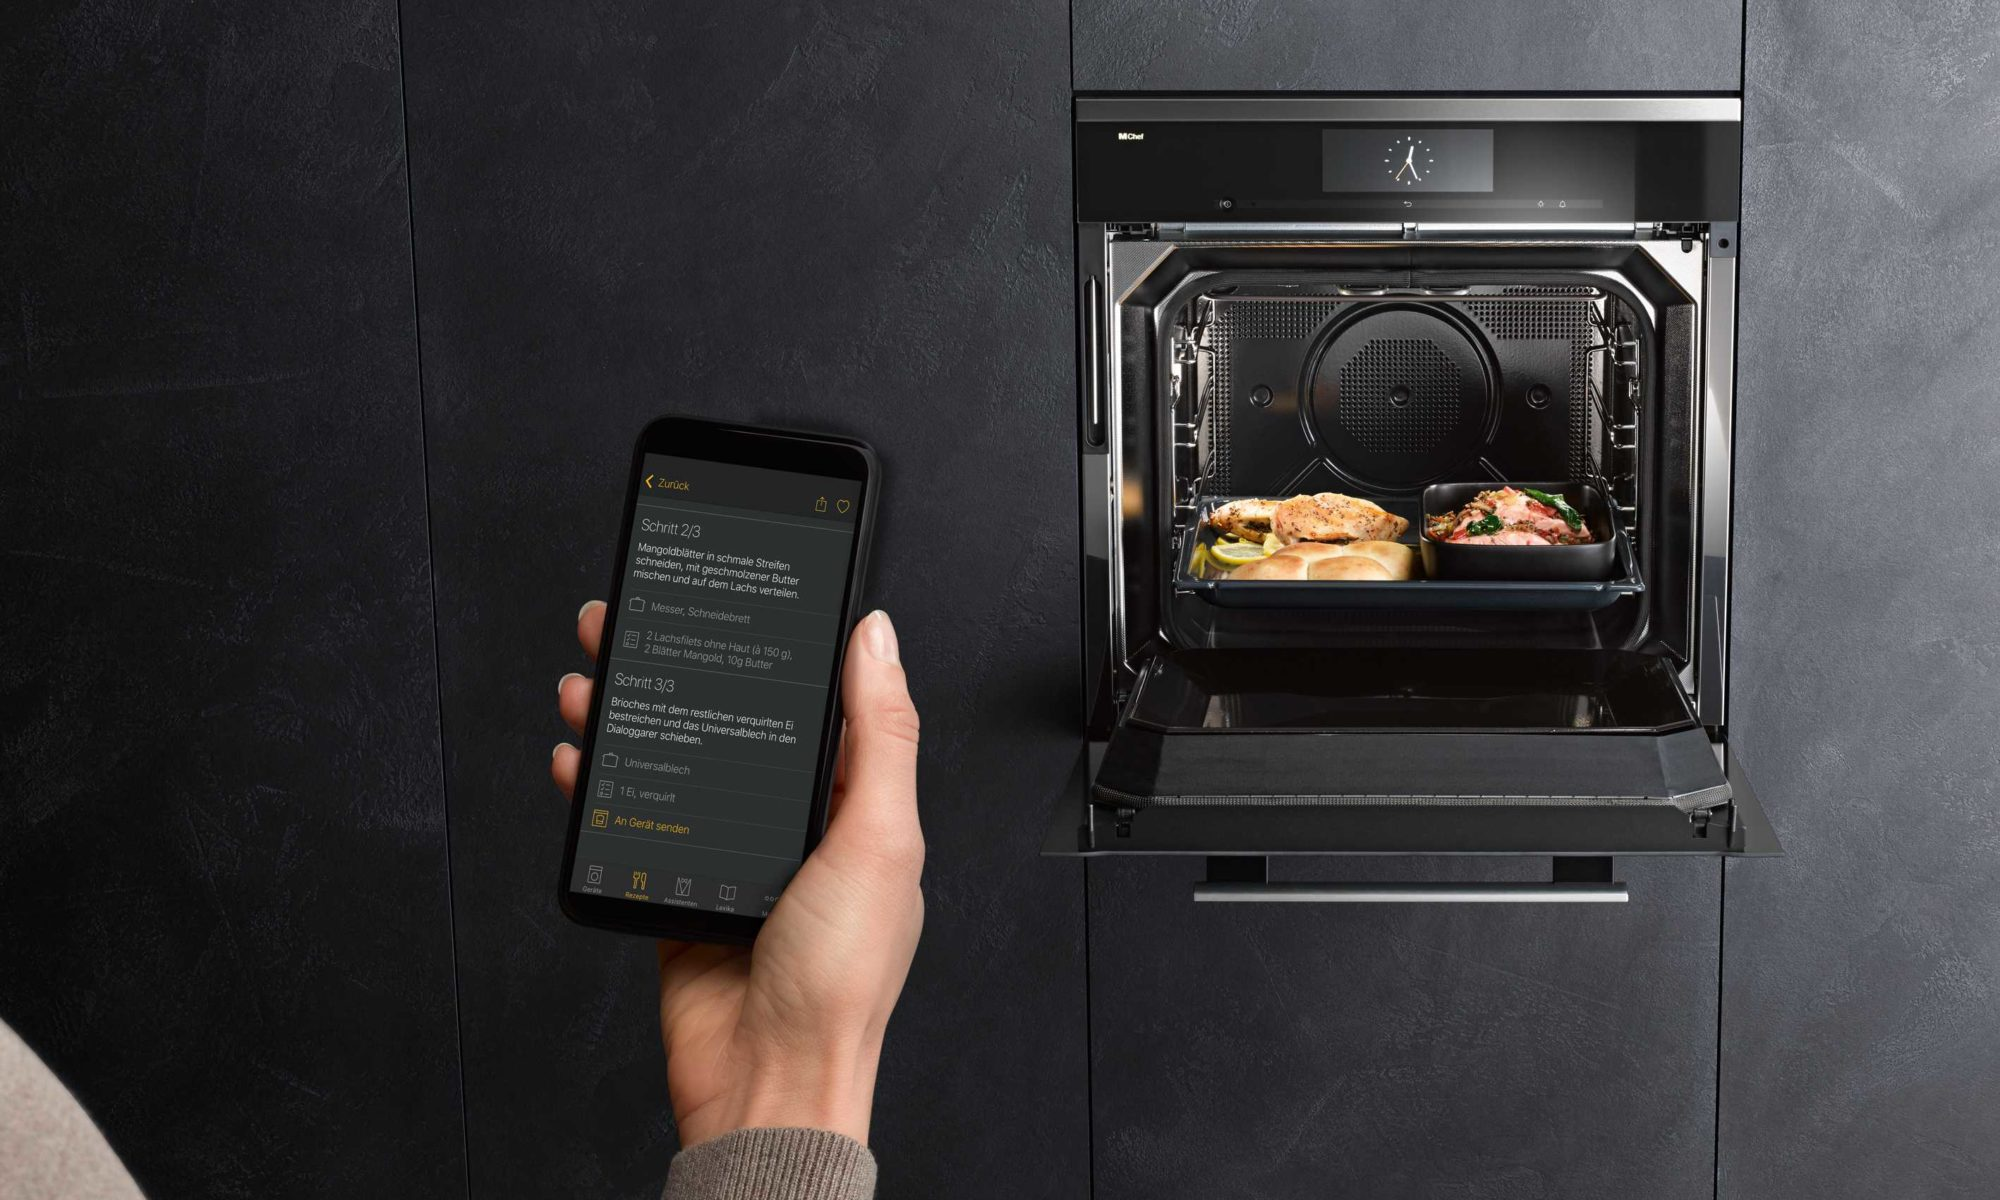 Miele Dialoggarer, Backofen, Smart Home, Fernsteuerung, Kochen, Innovation